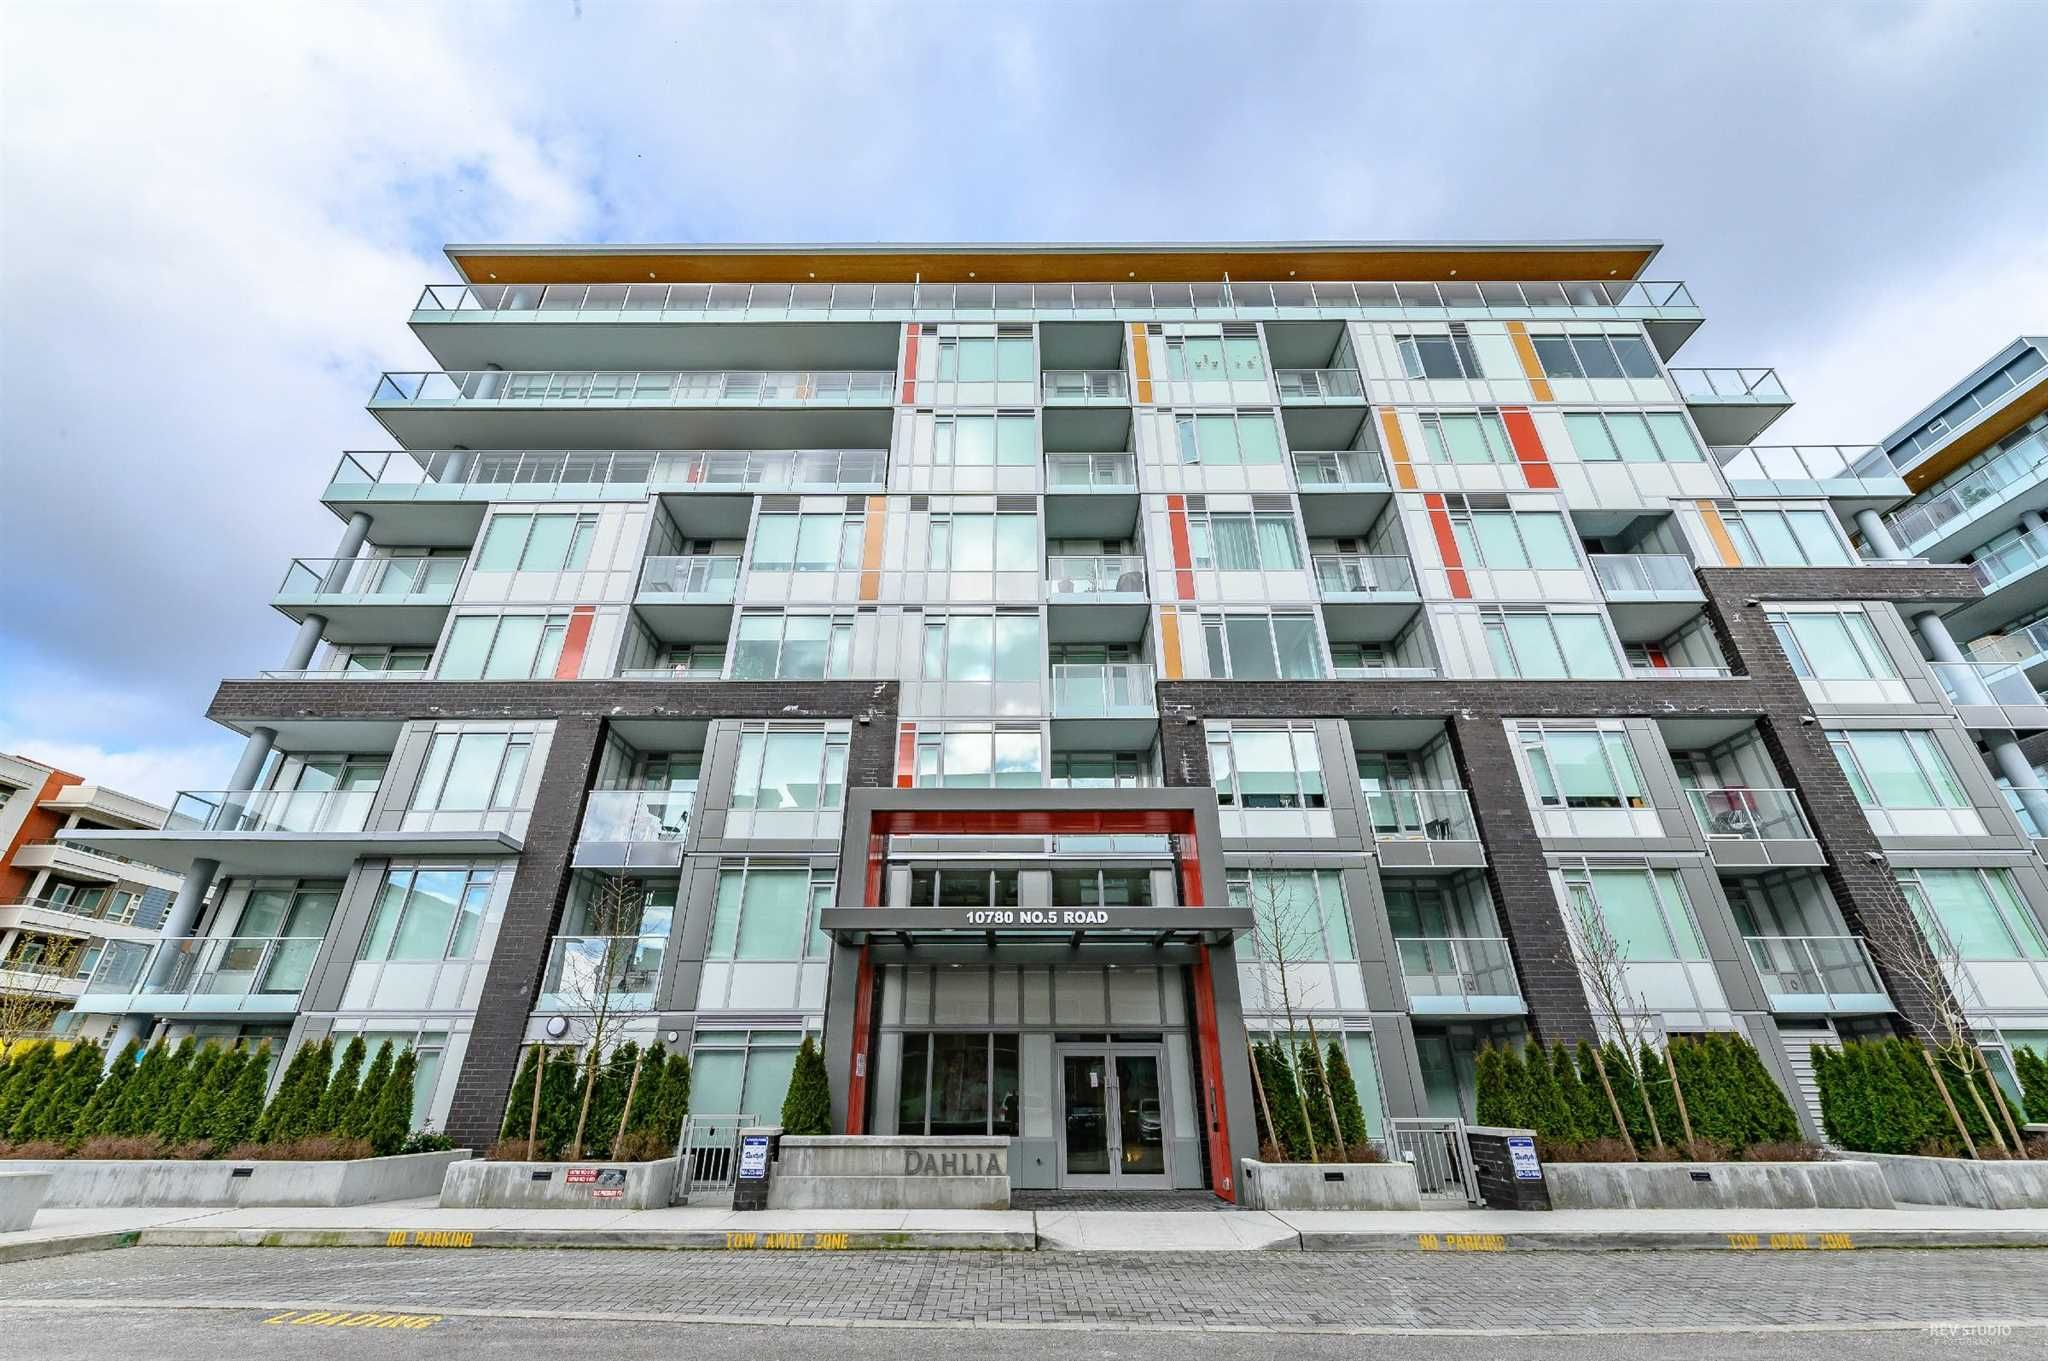 """Main Photo: 509 10780 NO. 5 Road in Richmond: Ironwood Condo for sale in """"DAHLIA AT THE GARDENS"""" : MLS®# R2594825"""